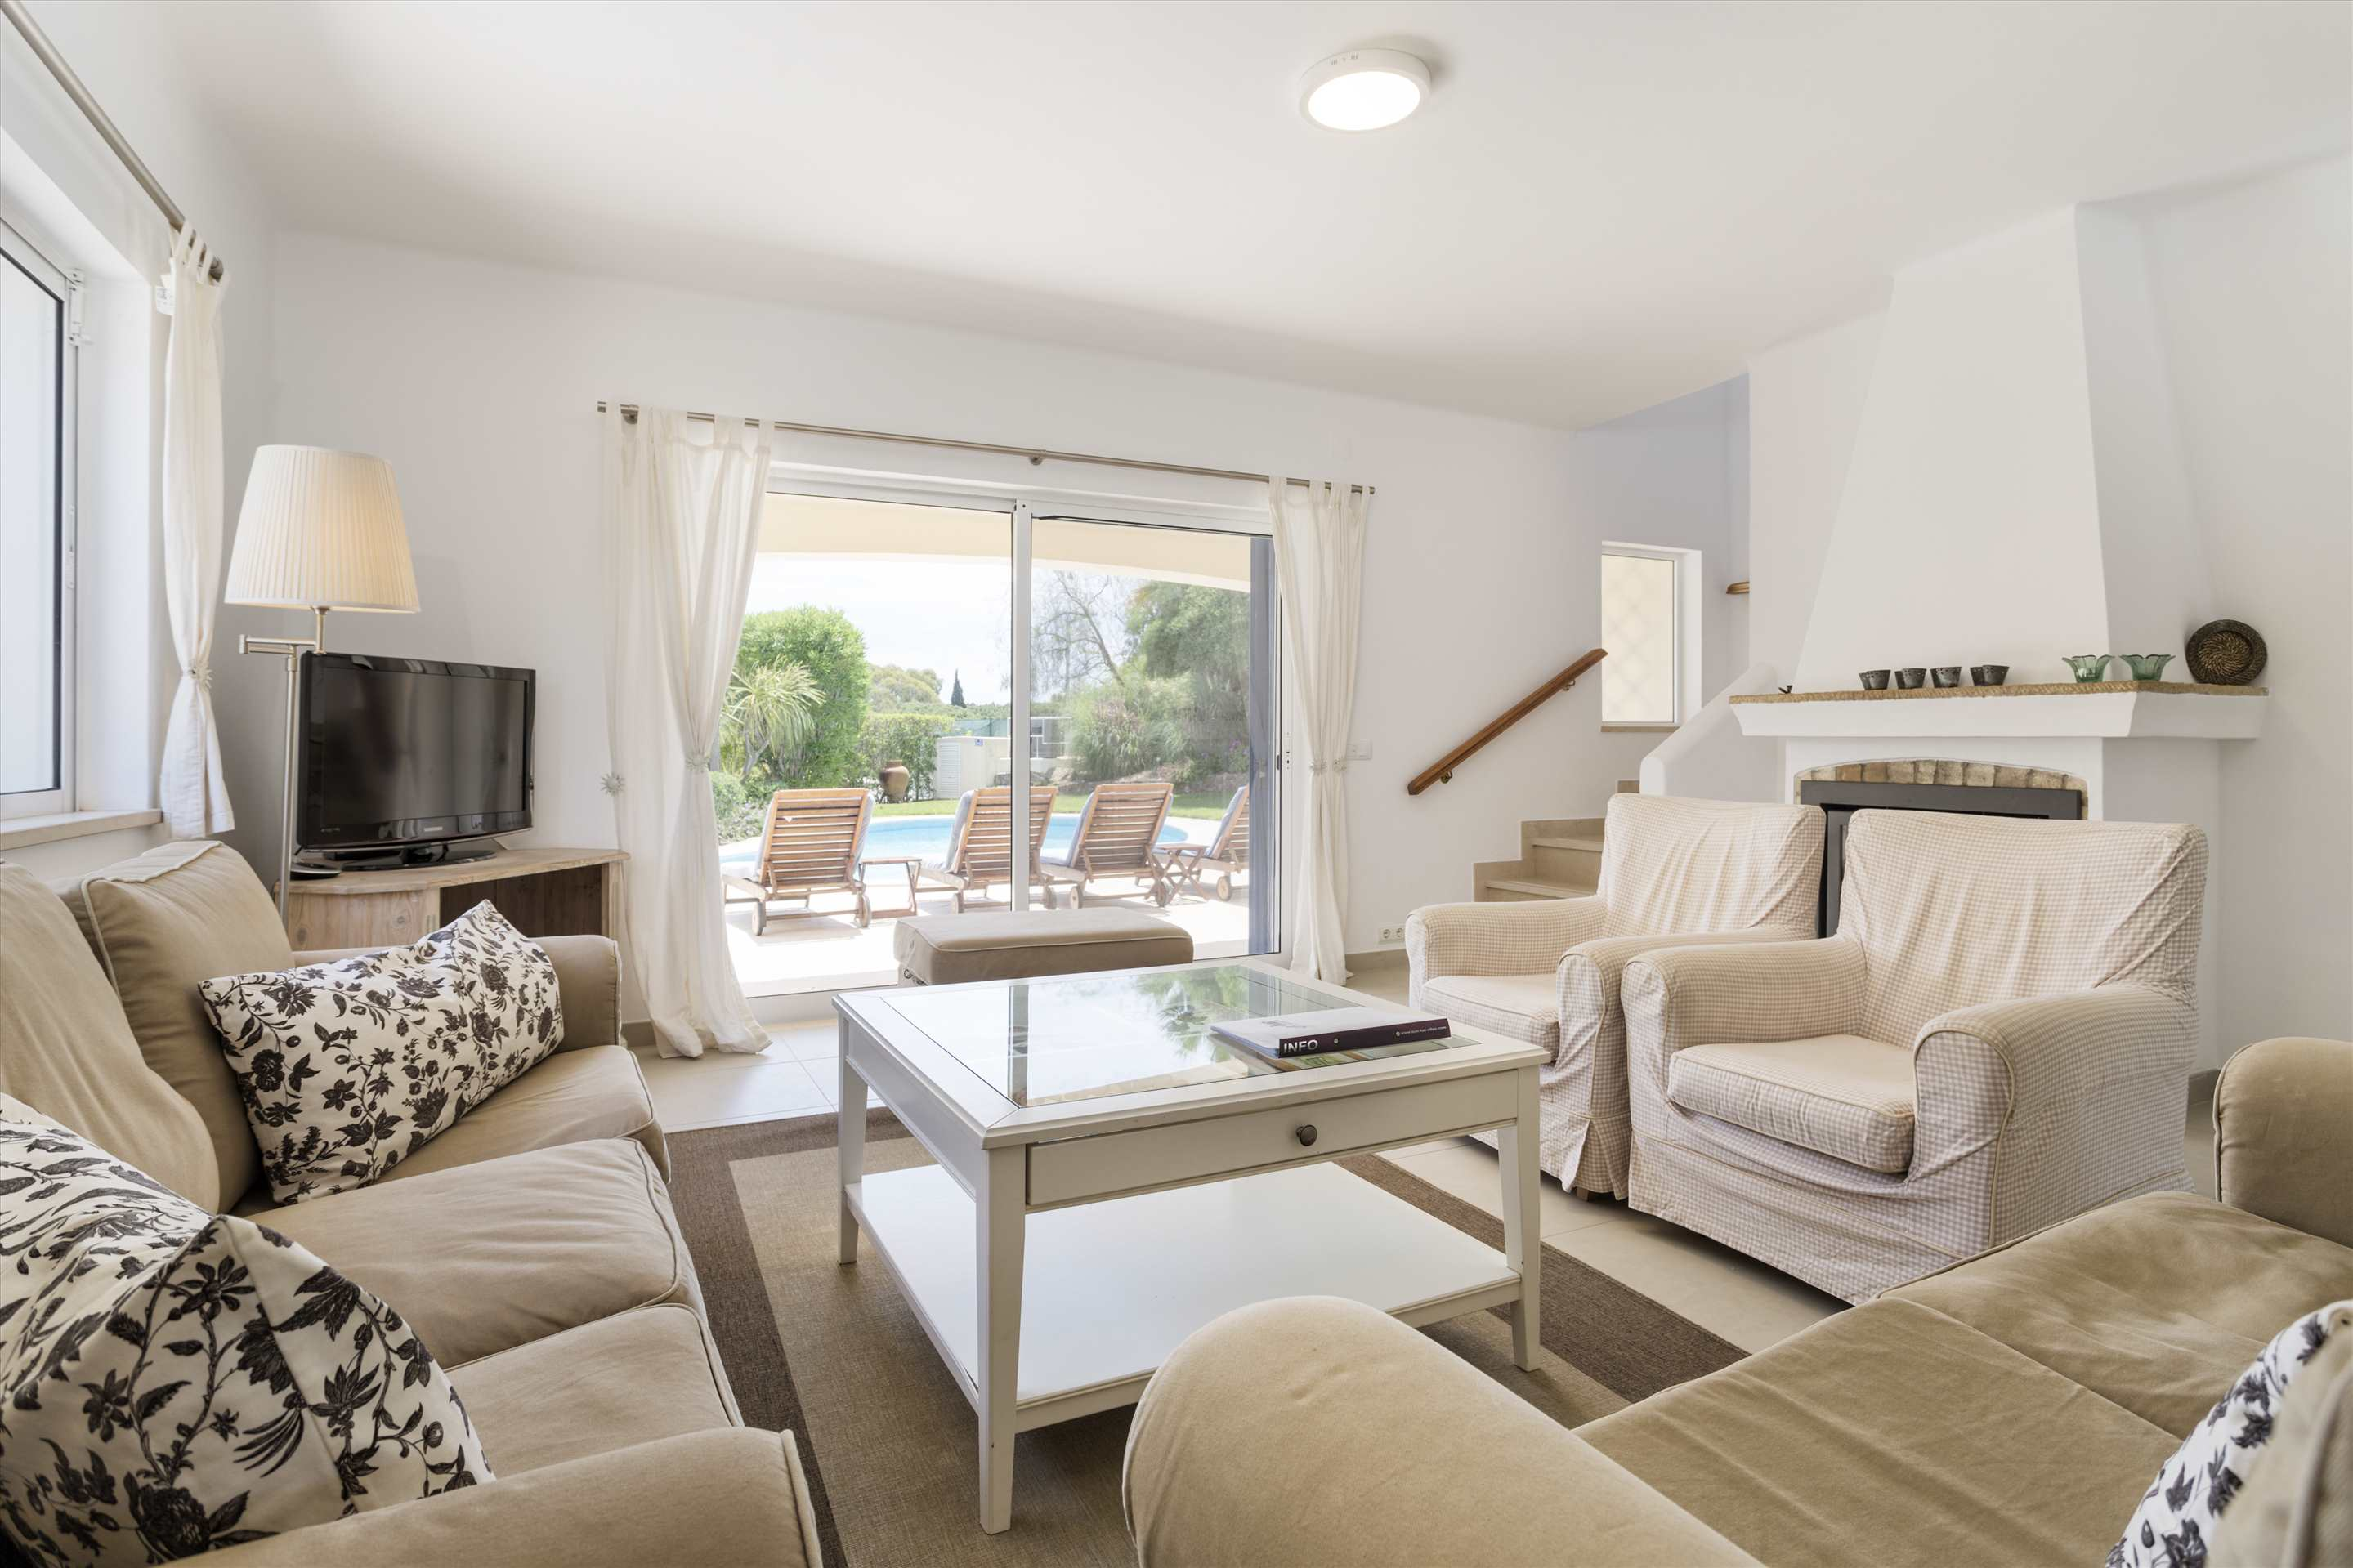 Villa Longa, 4 bedroom villa in Vale do Lobo, Algarve Photo #3